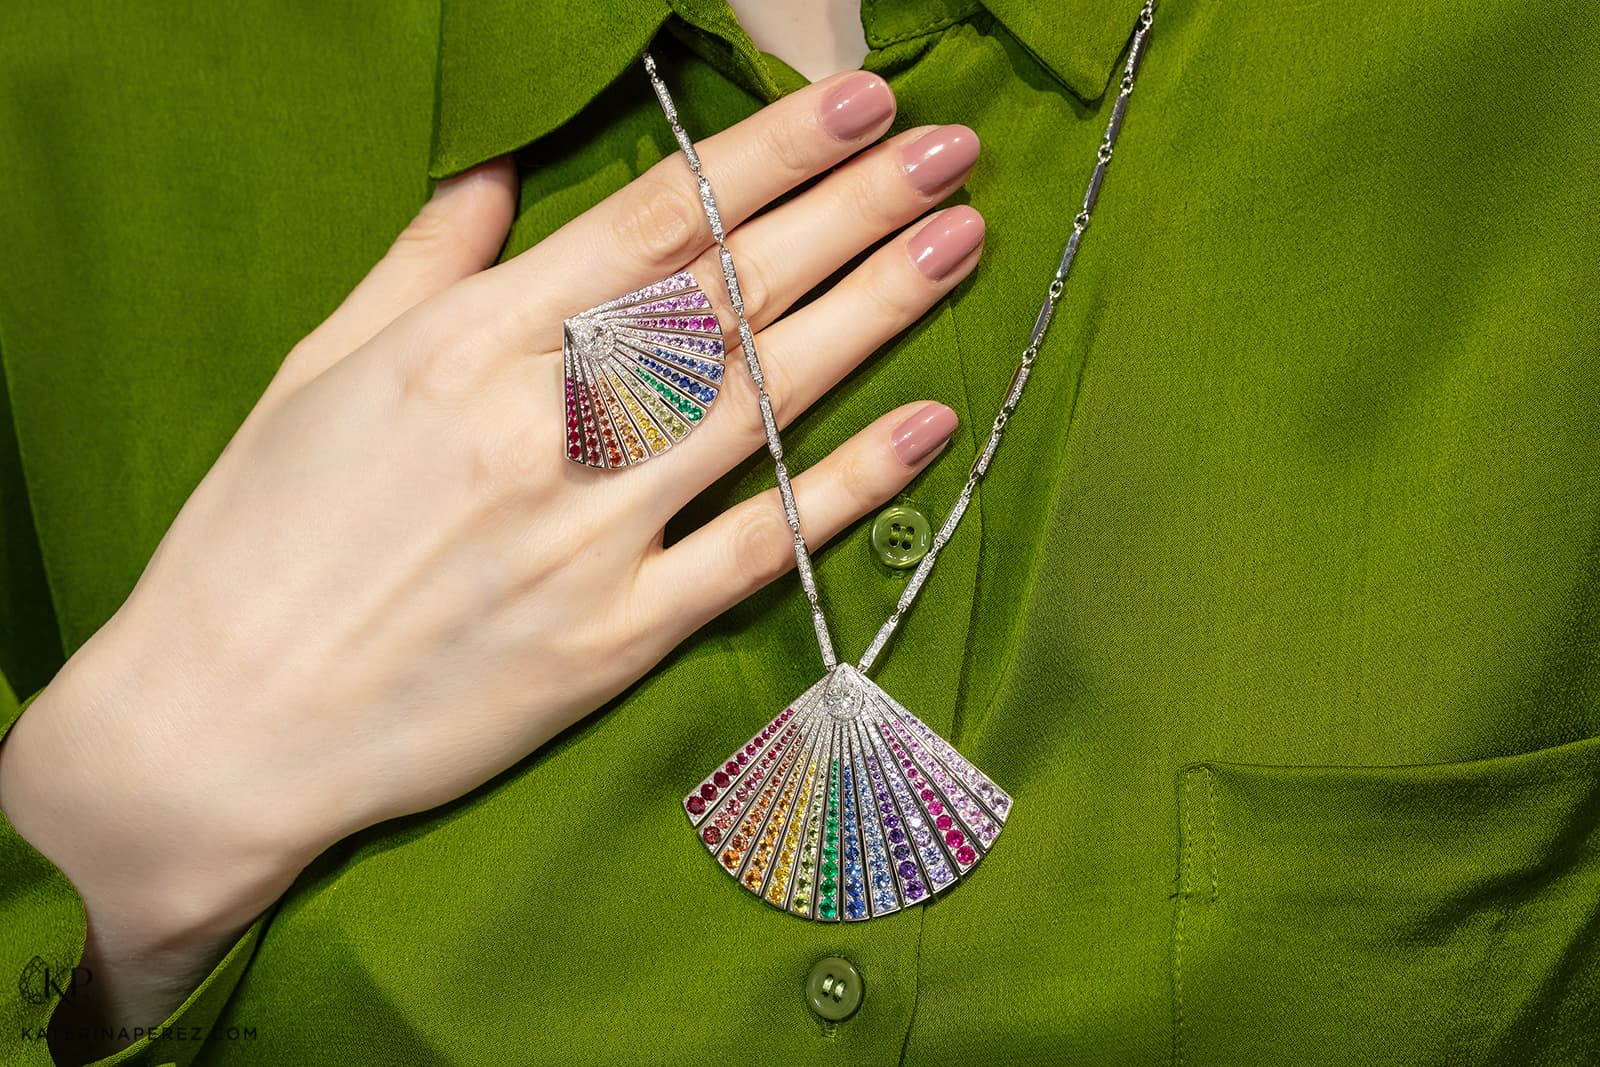 Maison Tabbah 'Wonders' ring and sautoir necklace with diamonds and multi-gemstone embellishment in gold